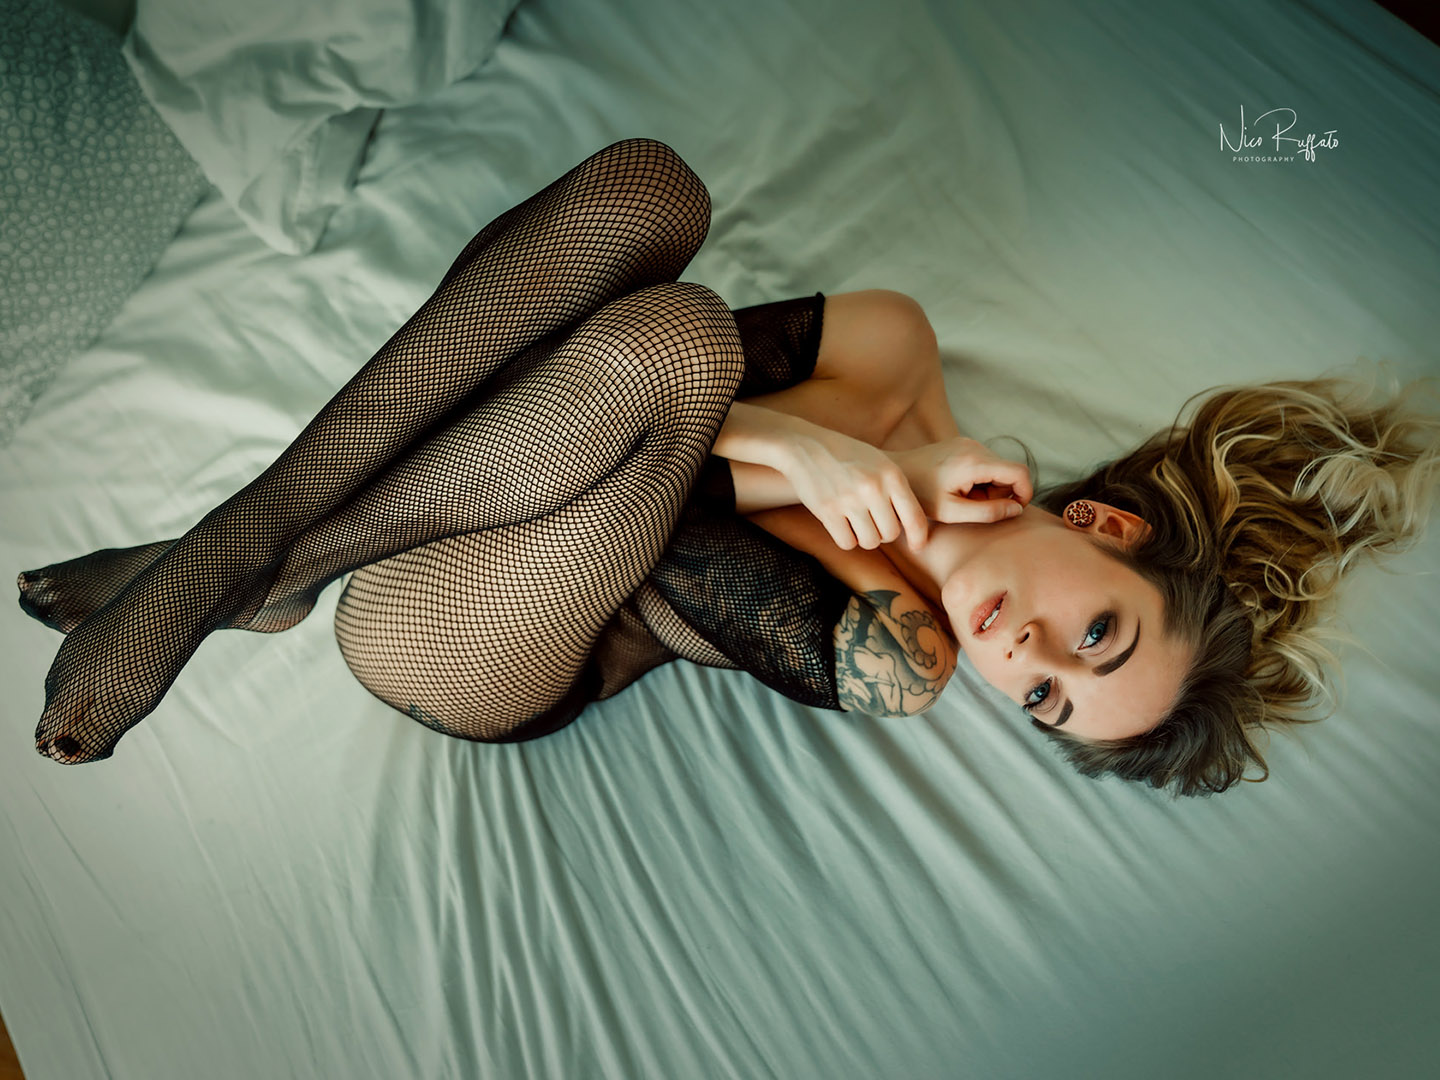 Categorie: Boudoir & Nude, Glamour, Portrait; Photographer: NICO RUFFATO; Model: STEPHANIE LIARDO; Location: Roma, RM, Italia